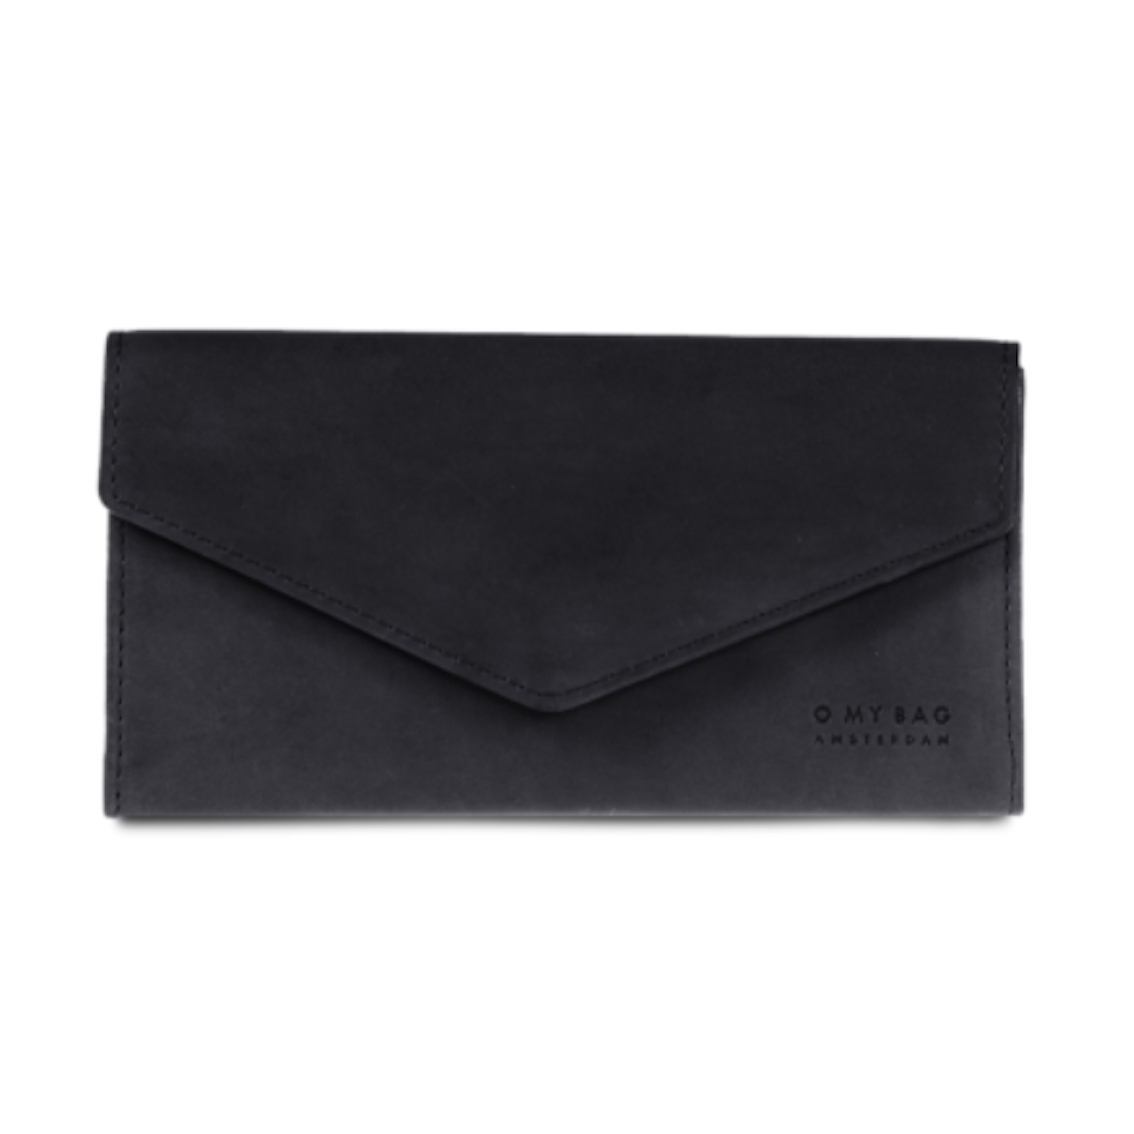 OMB Enveloppe Pixie Pouch Black Classic Leather